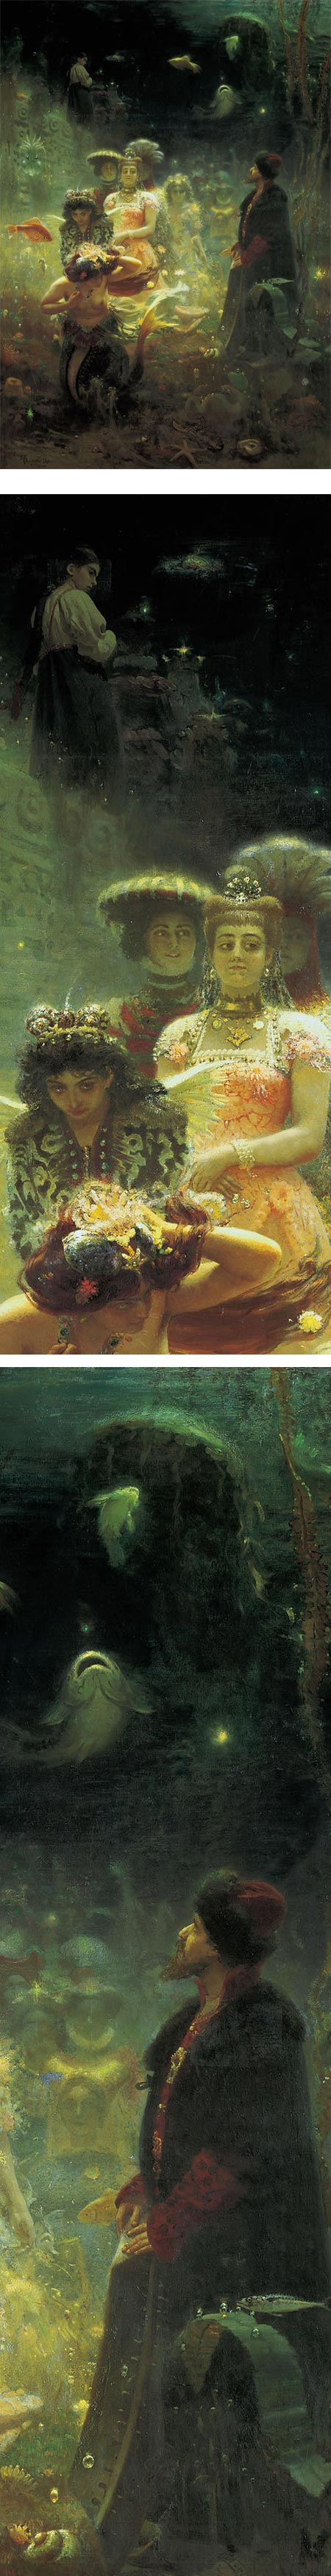 Sadko in the Underwater Kingdom, Ilya Repin 